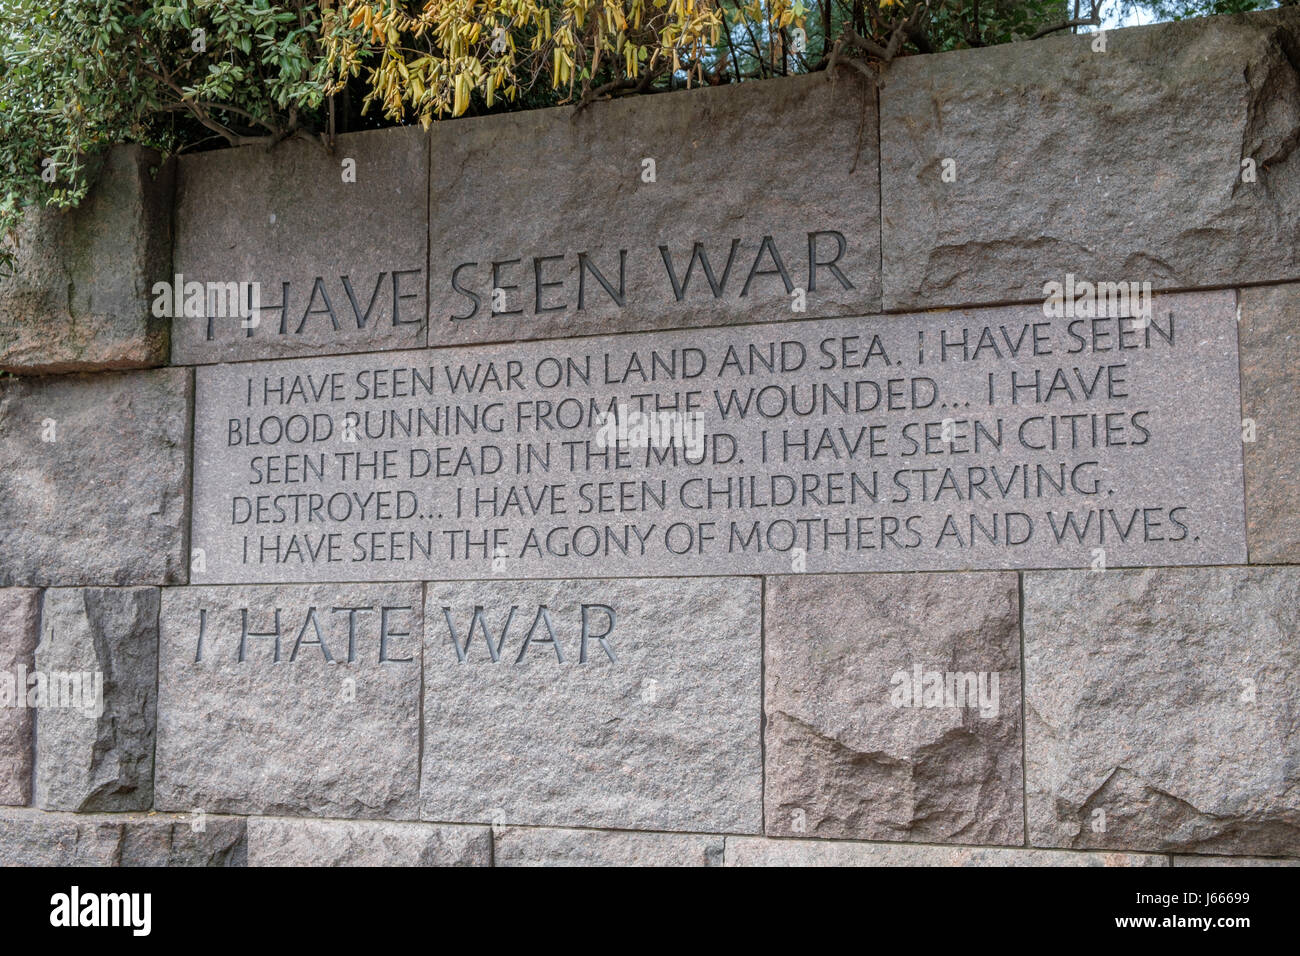 I Hate War Quote, FDR Memorial, Washington, DC - Stock Image